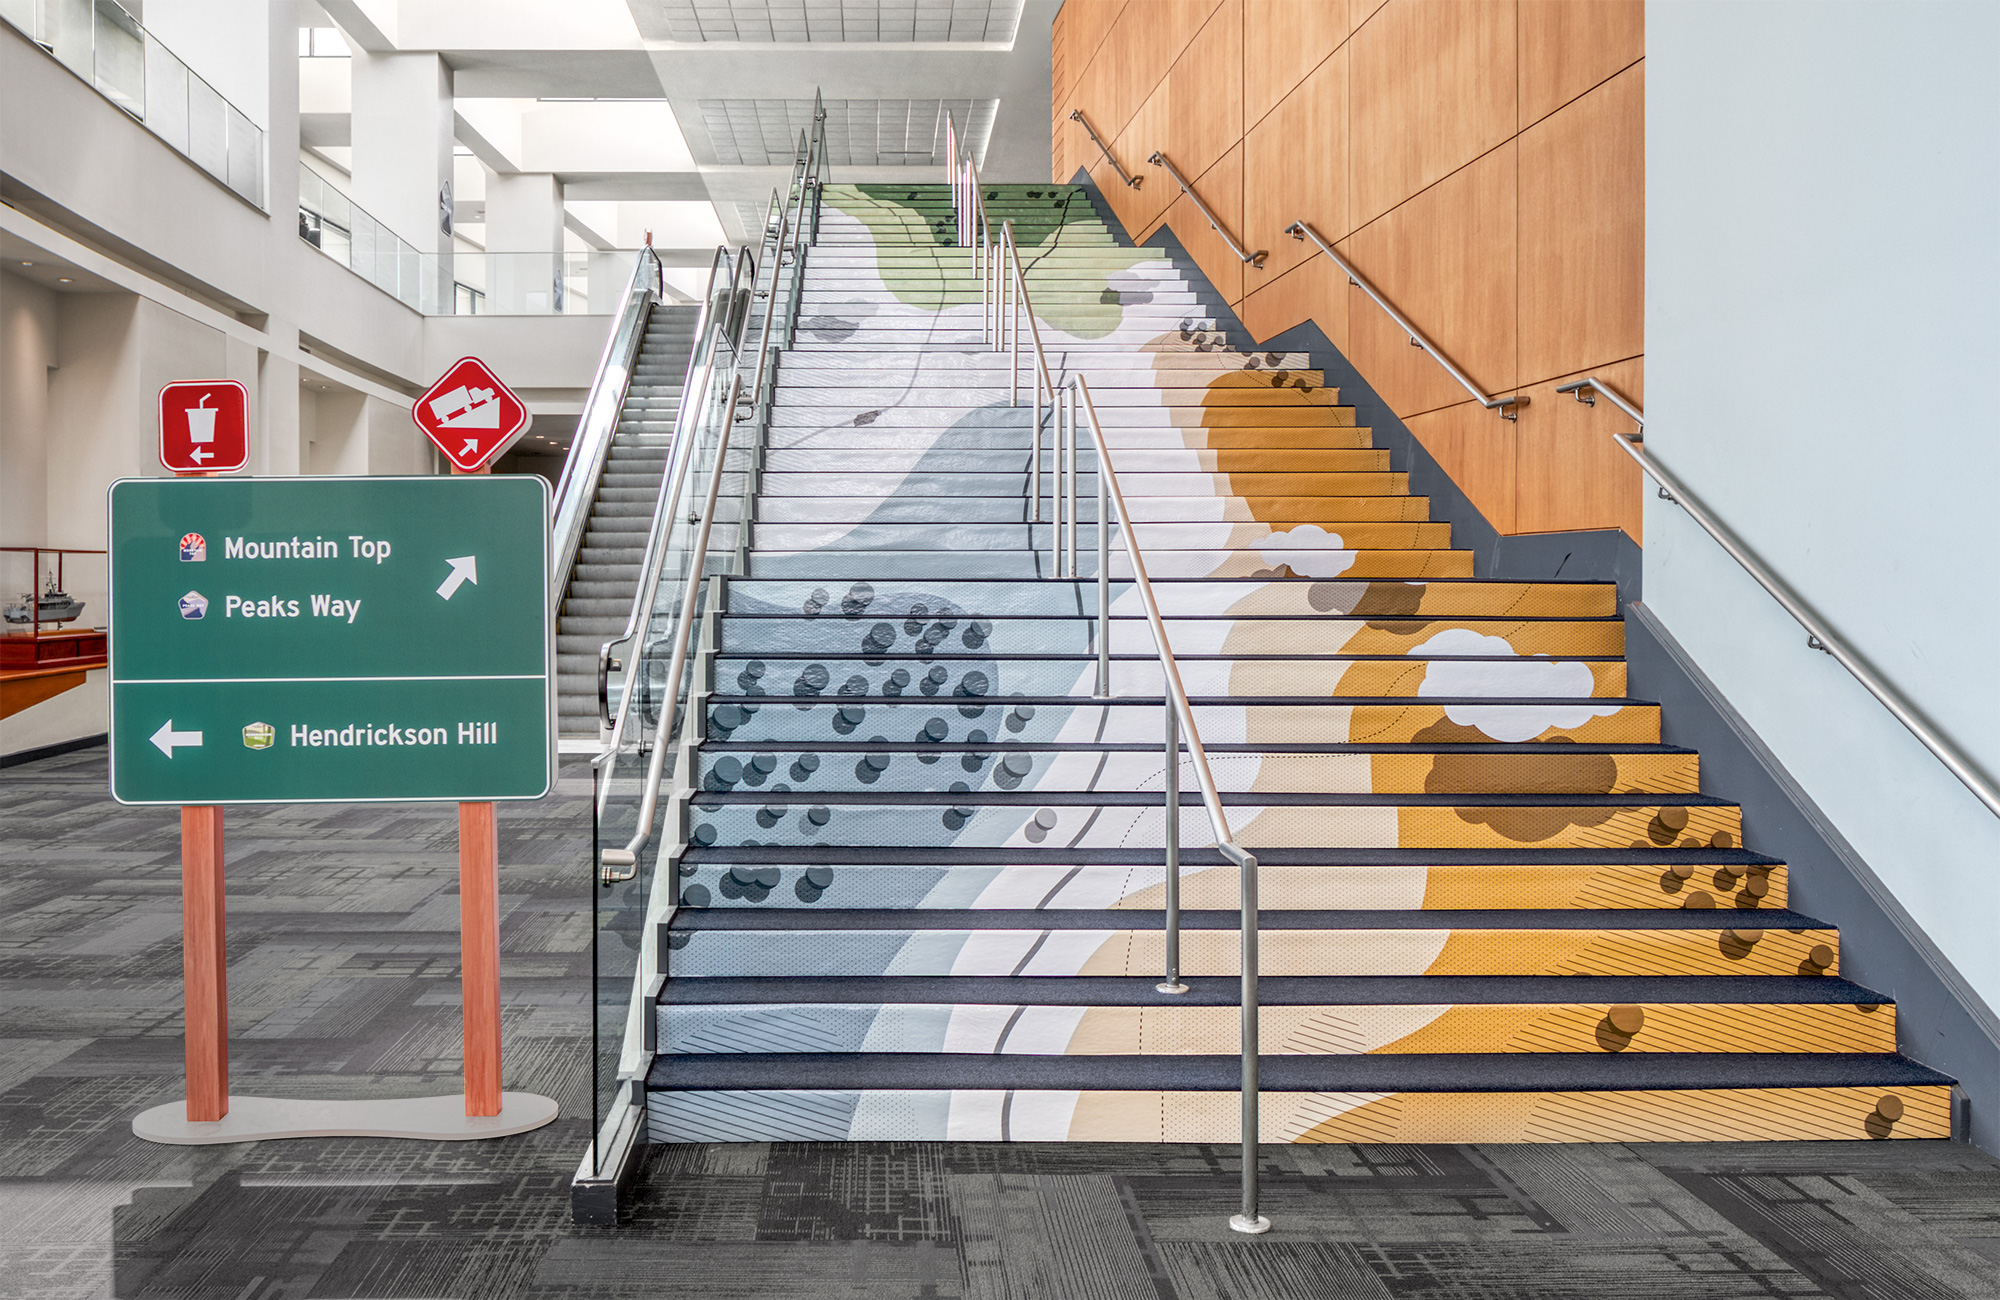 The topographic map illustration wrapped up the stair risers inside of the Savannah Convention Center